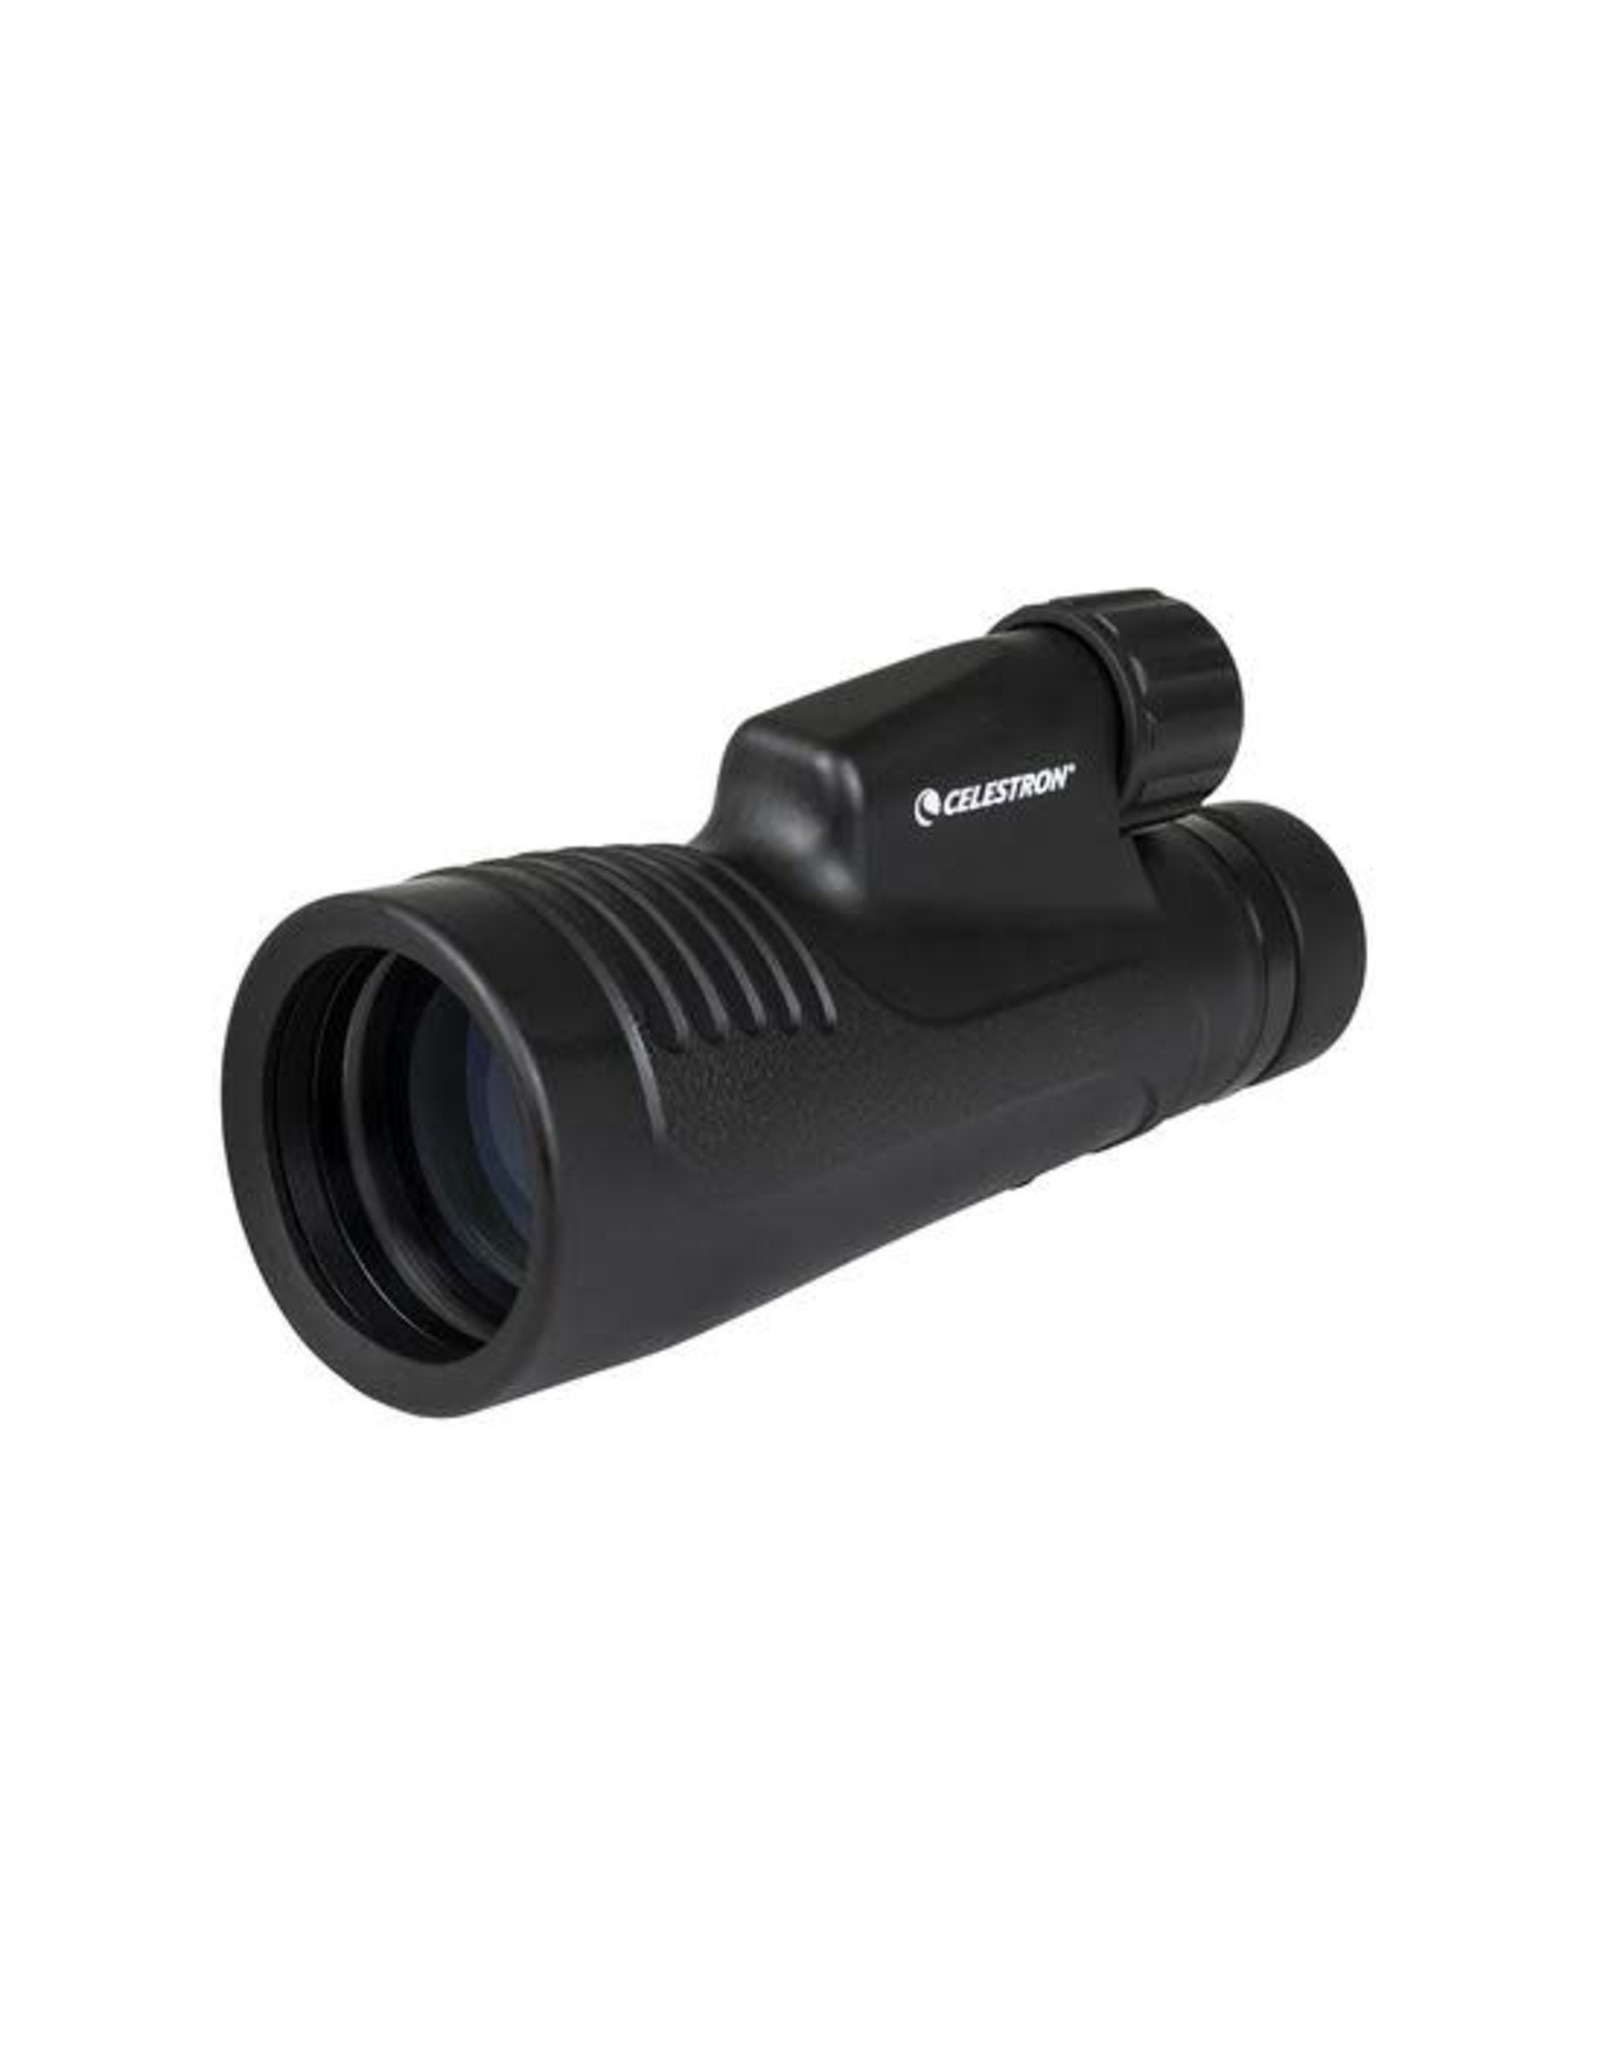 Celestron 15x50mm Outland X Monocular with Smartphone Adapter